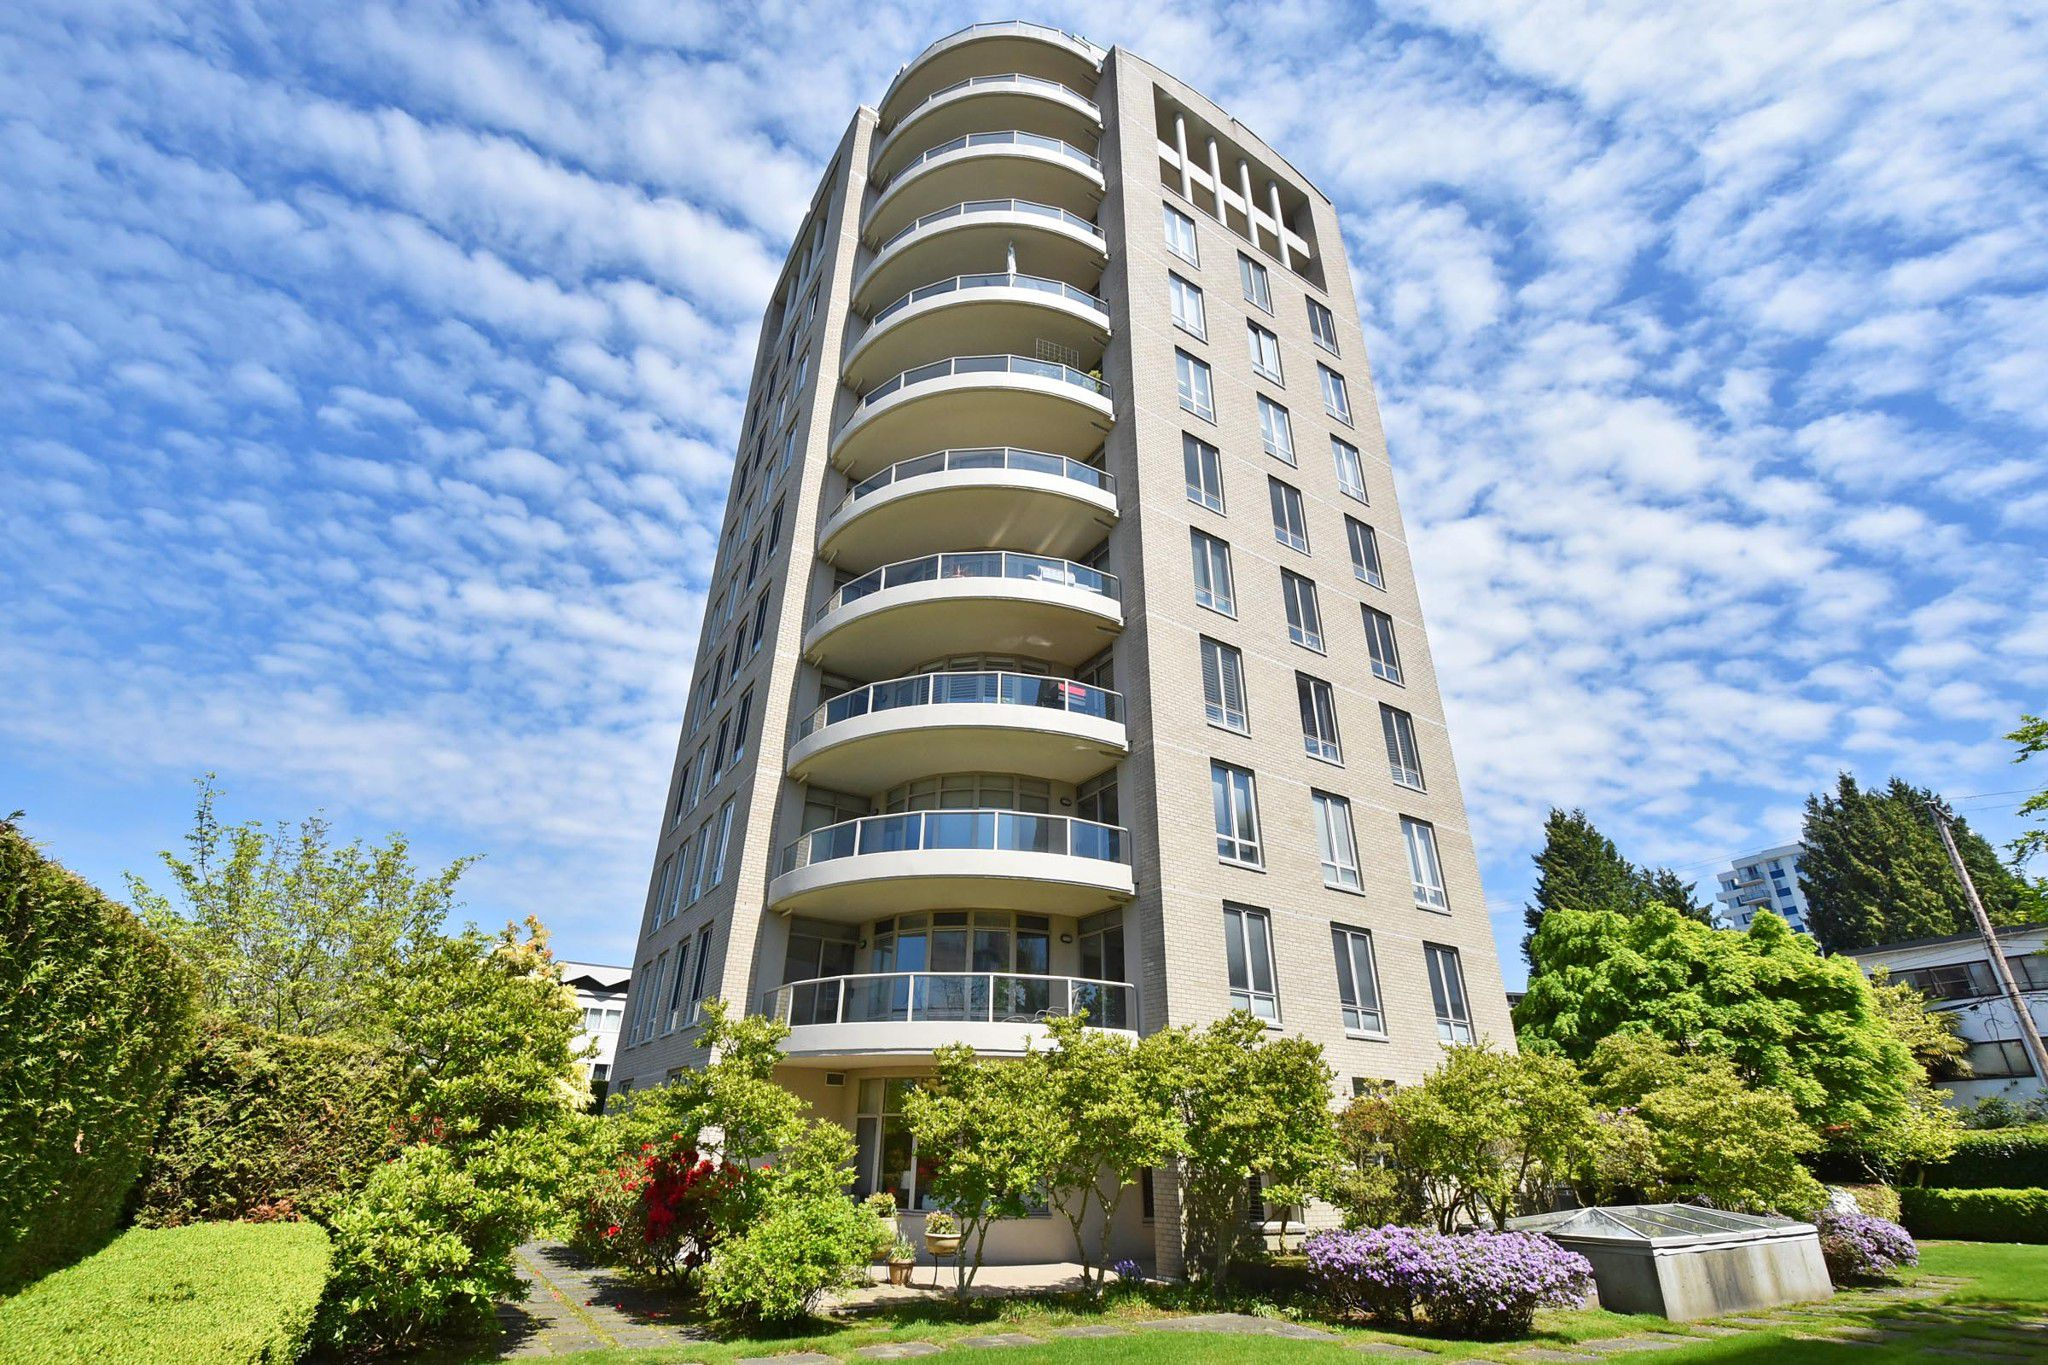 """Main Photo: 202 5850 BALSAM Street in Vancouver: Kerrisdale Condo for sale in """"CLARIDGE"""" (Vancouver West)  : MLS®# R2265512"""